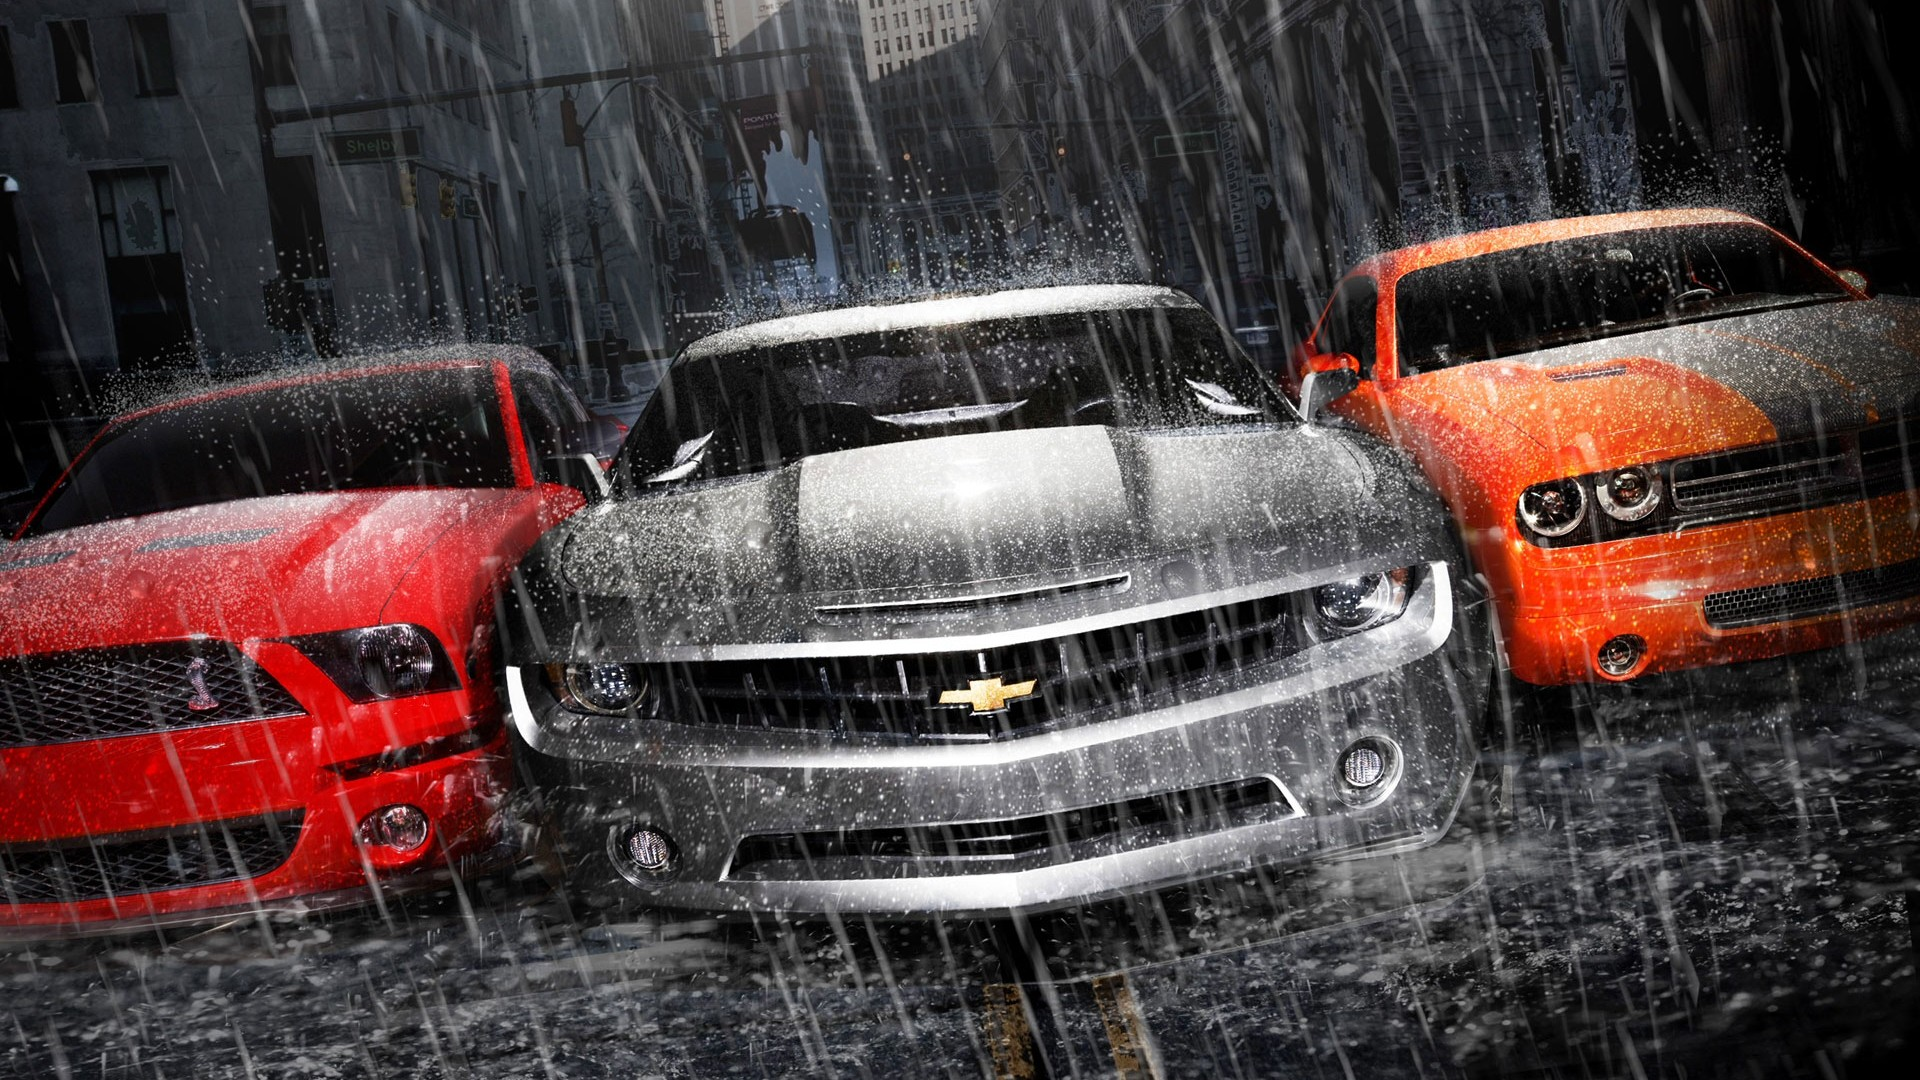 Chevrolet Cars in the Rain Wallpaper HD